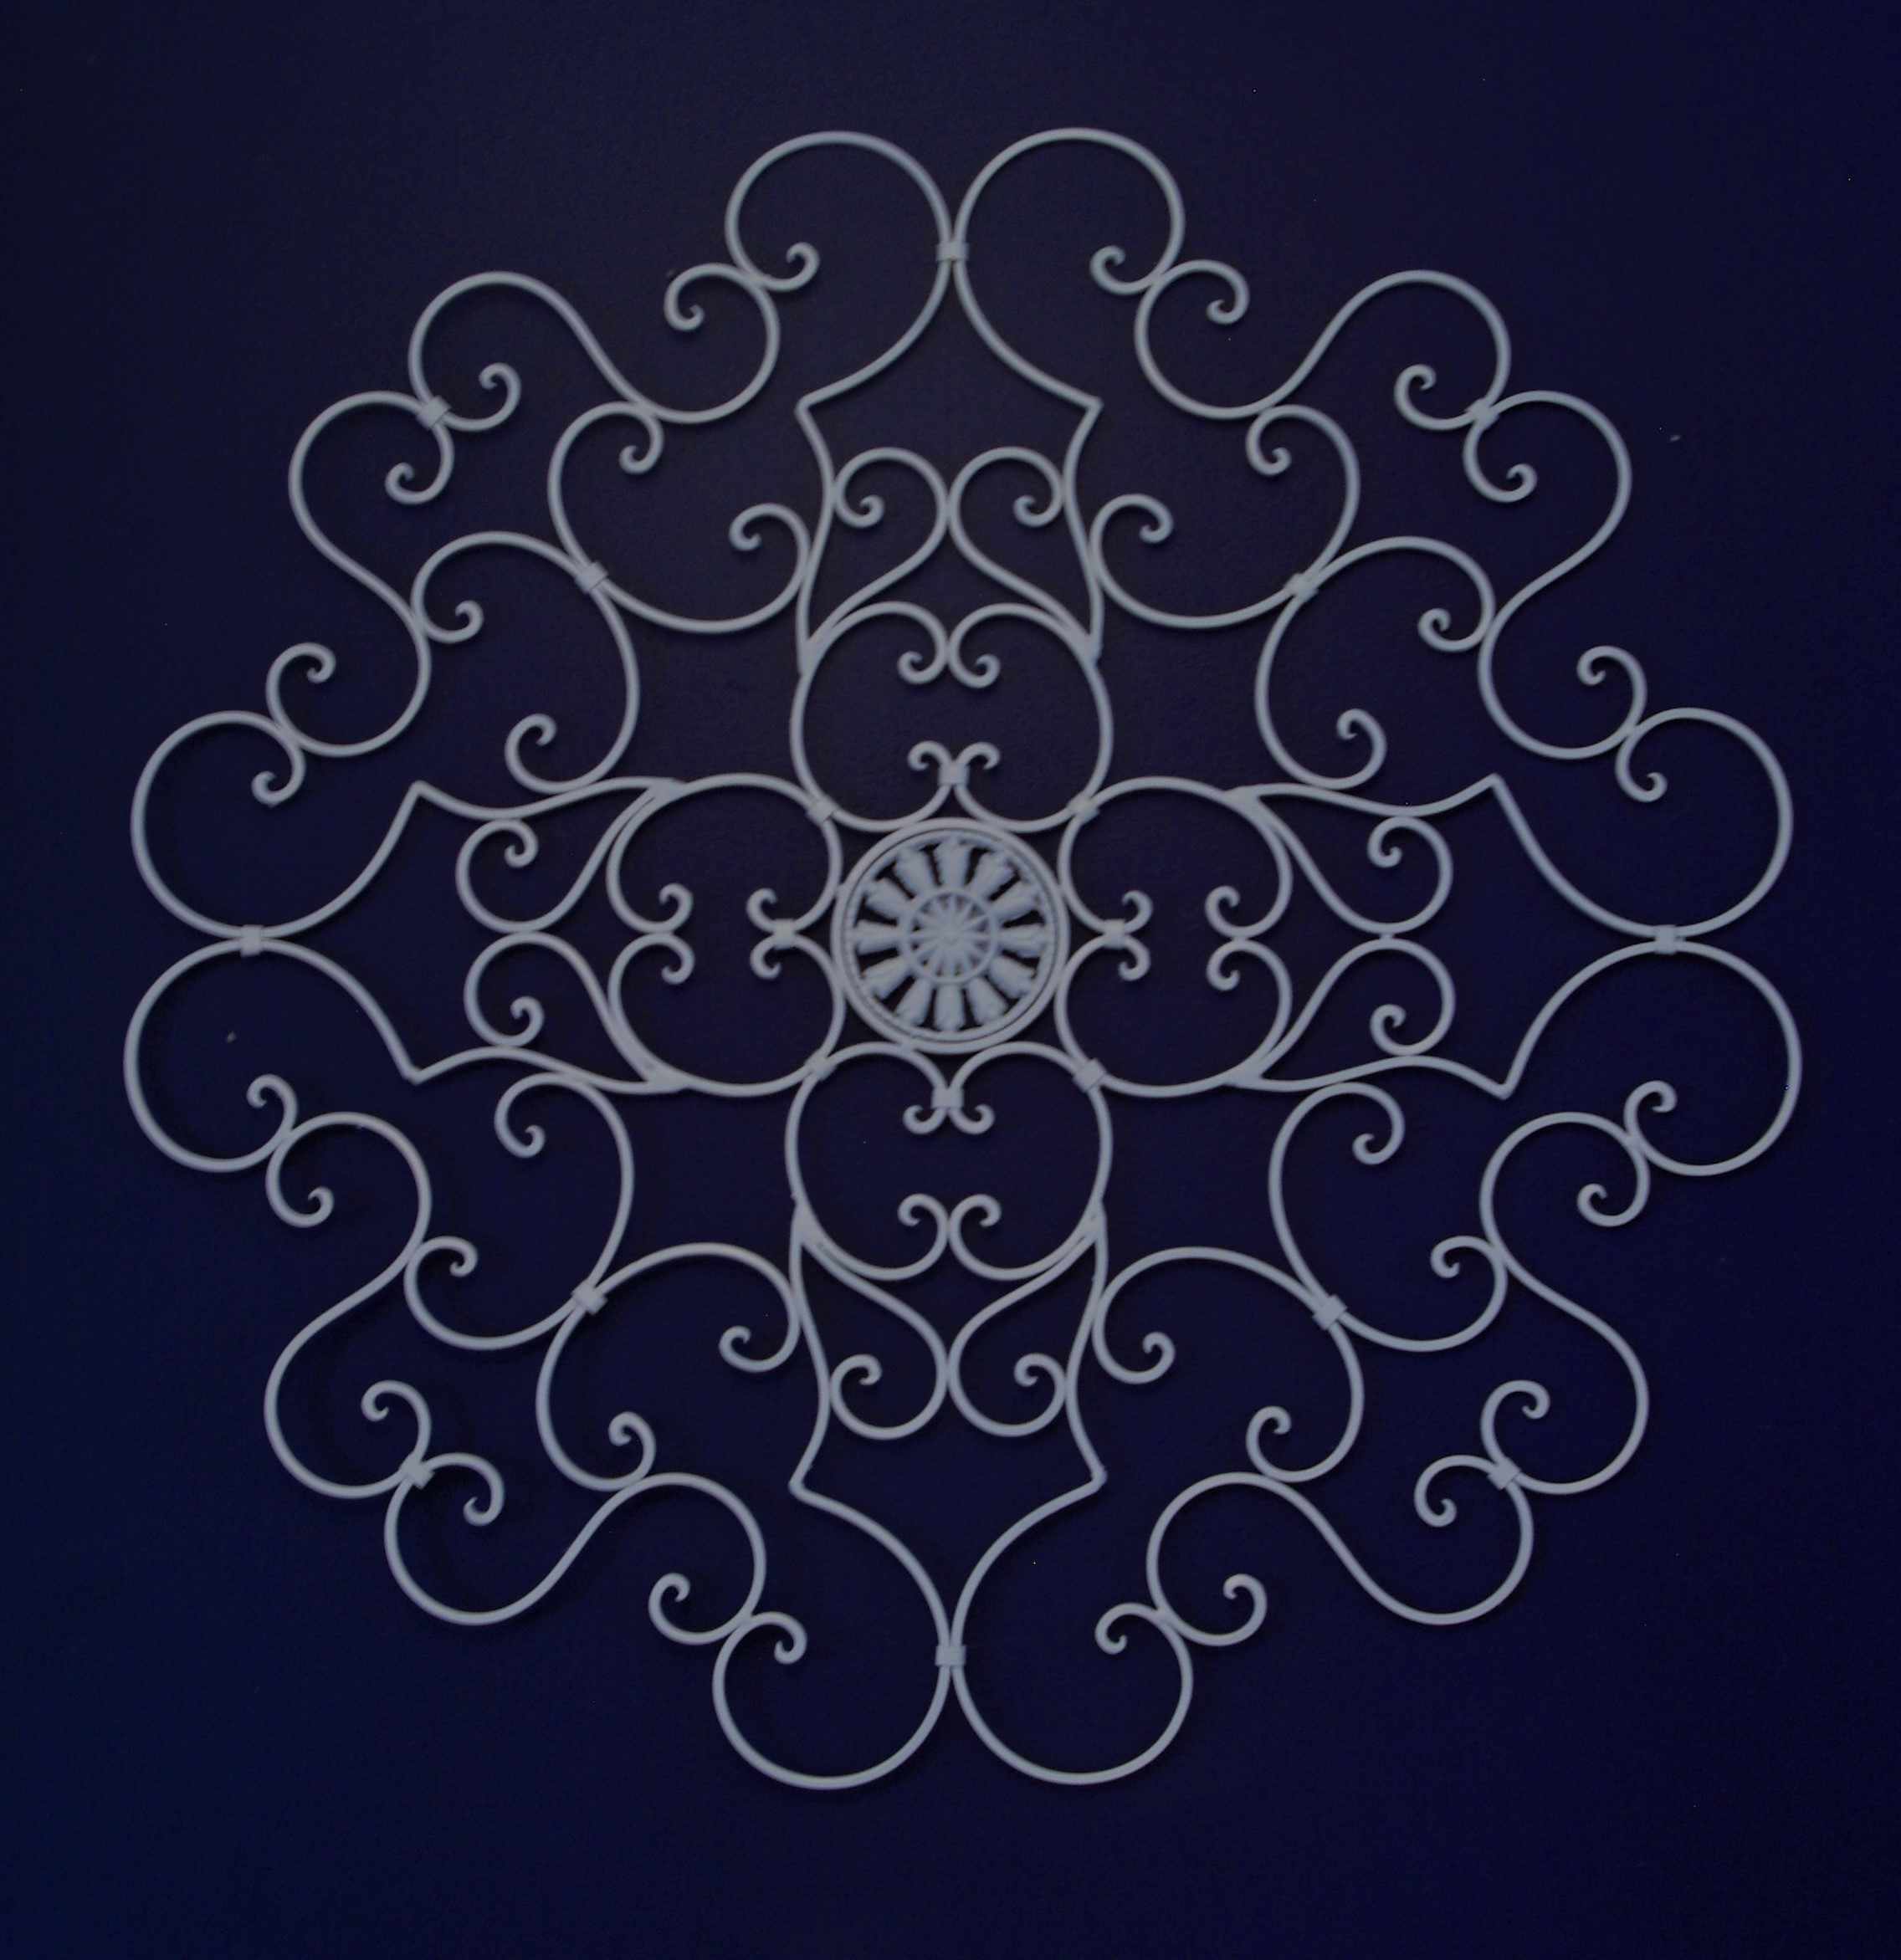 Iron decoration about 3 feet across